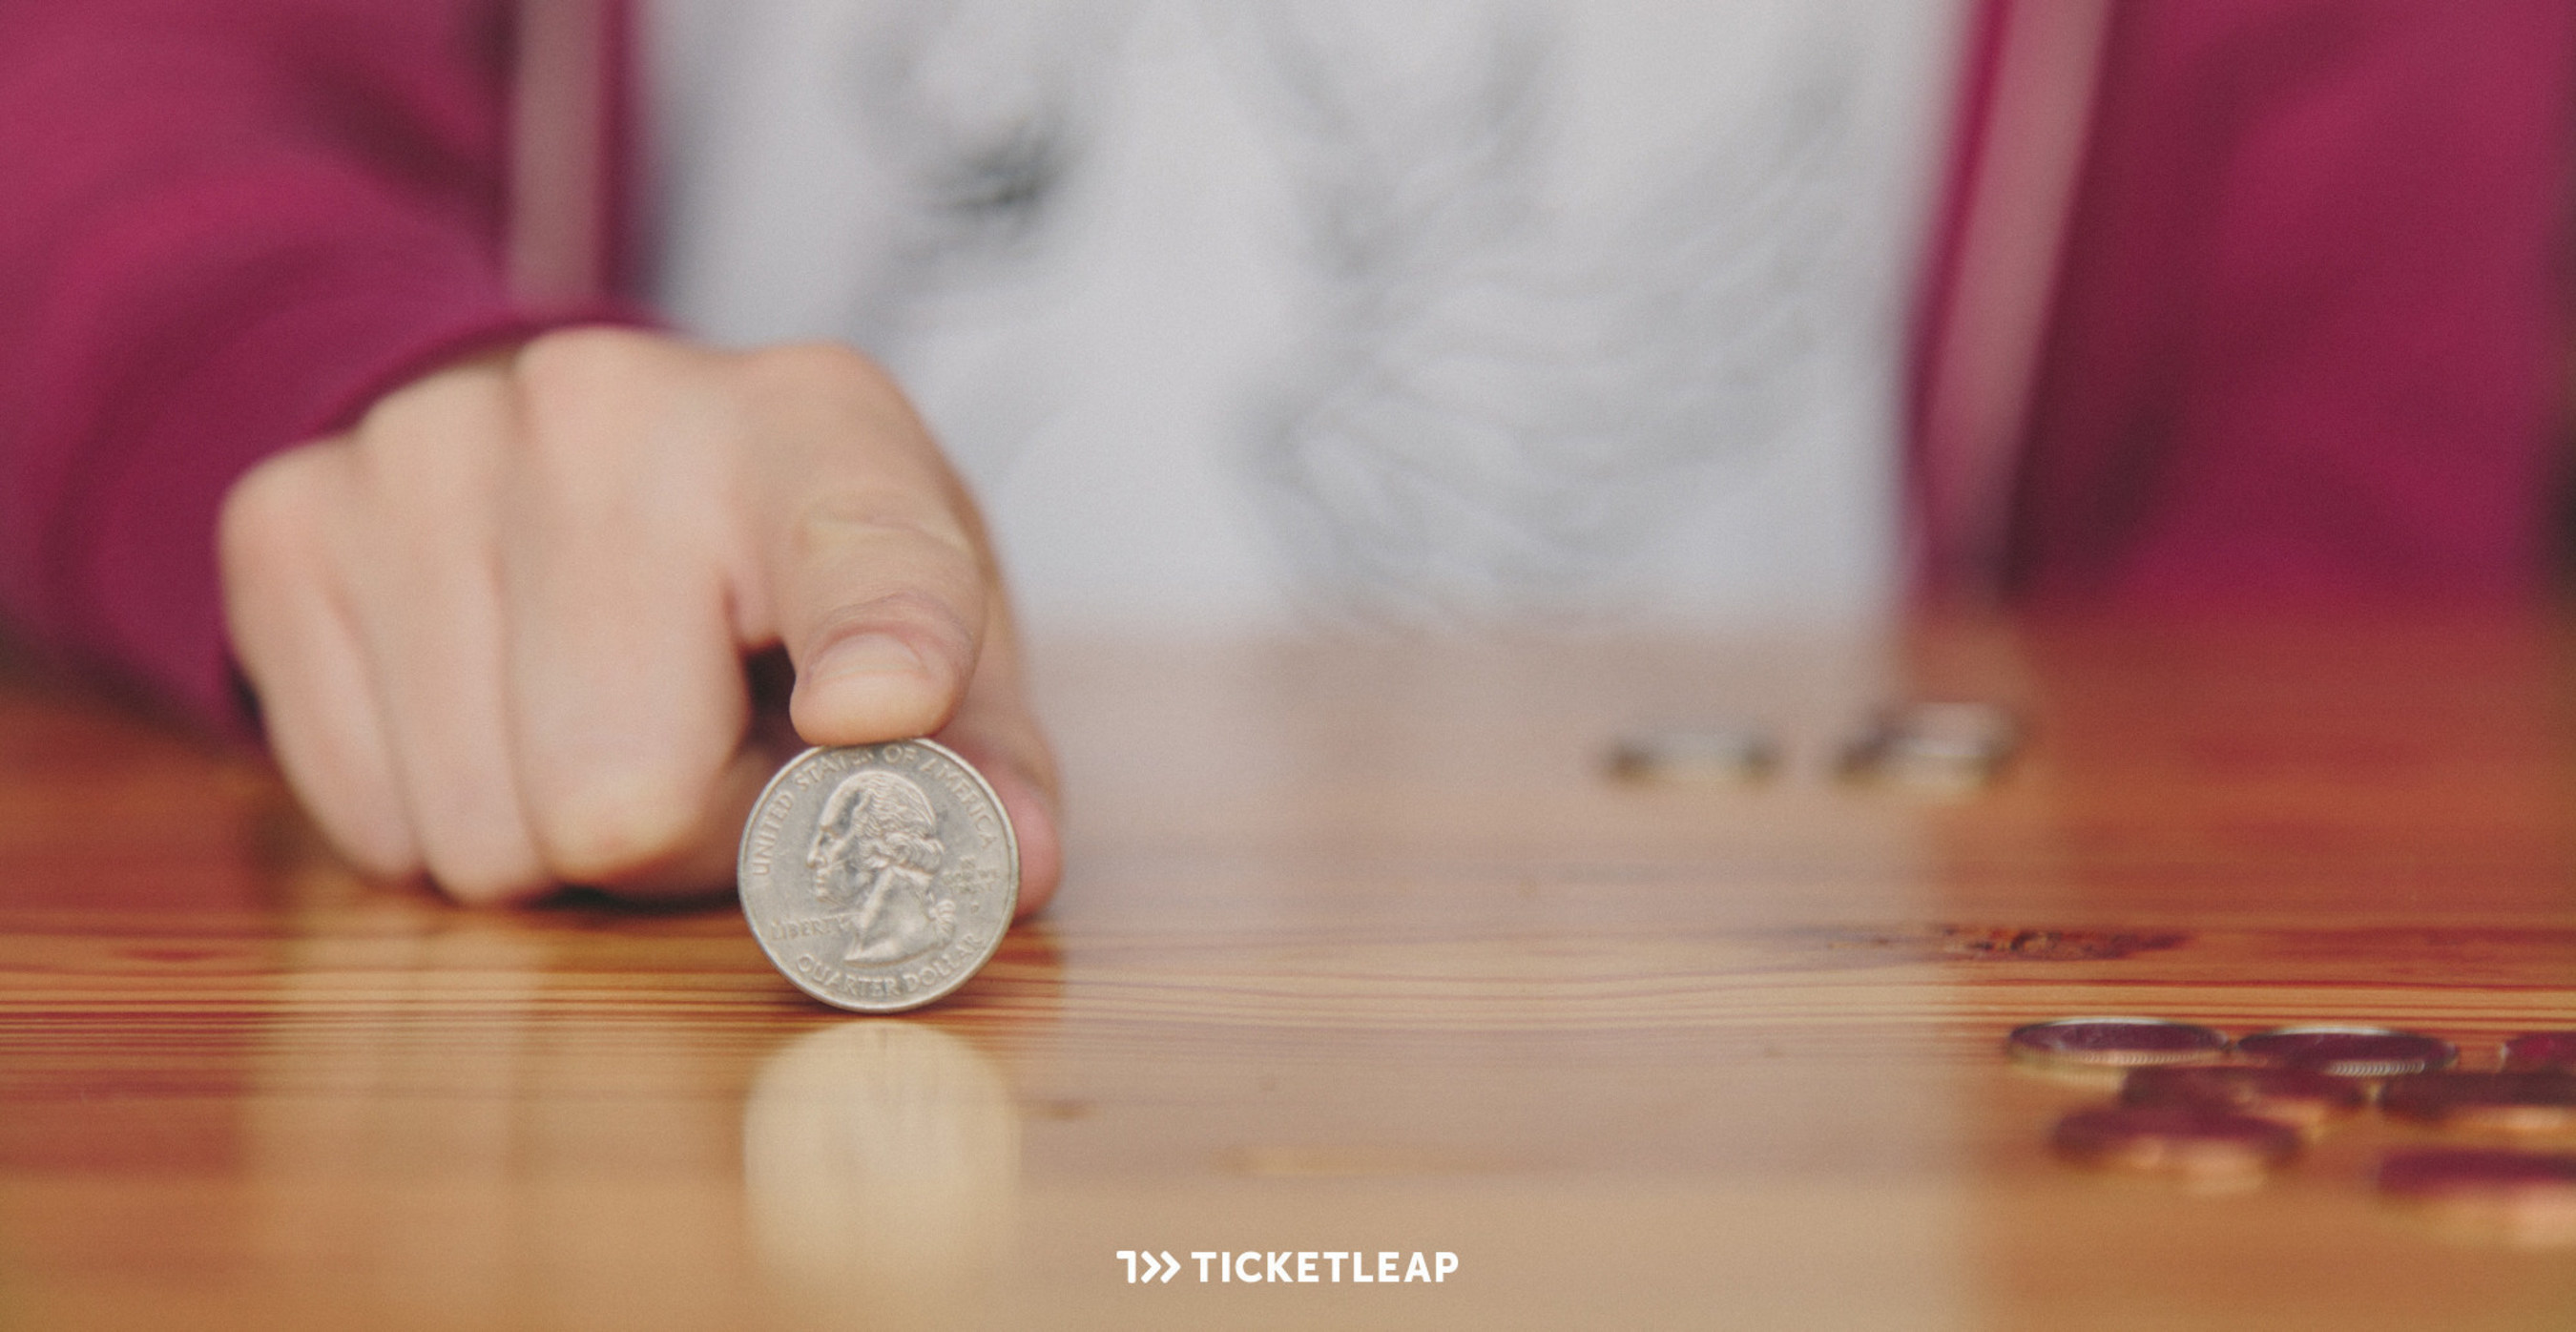 Leading Online Ticketing Platform Ticketleap, Introduces $0.25 All-In Flat Fee for Tickets $5 and Under